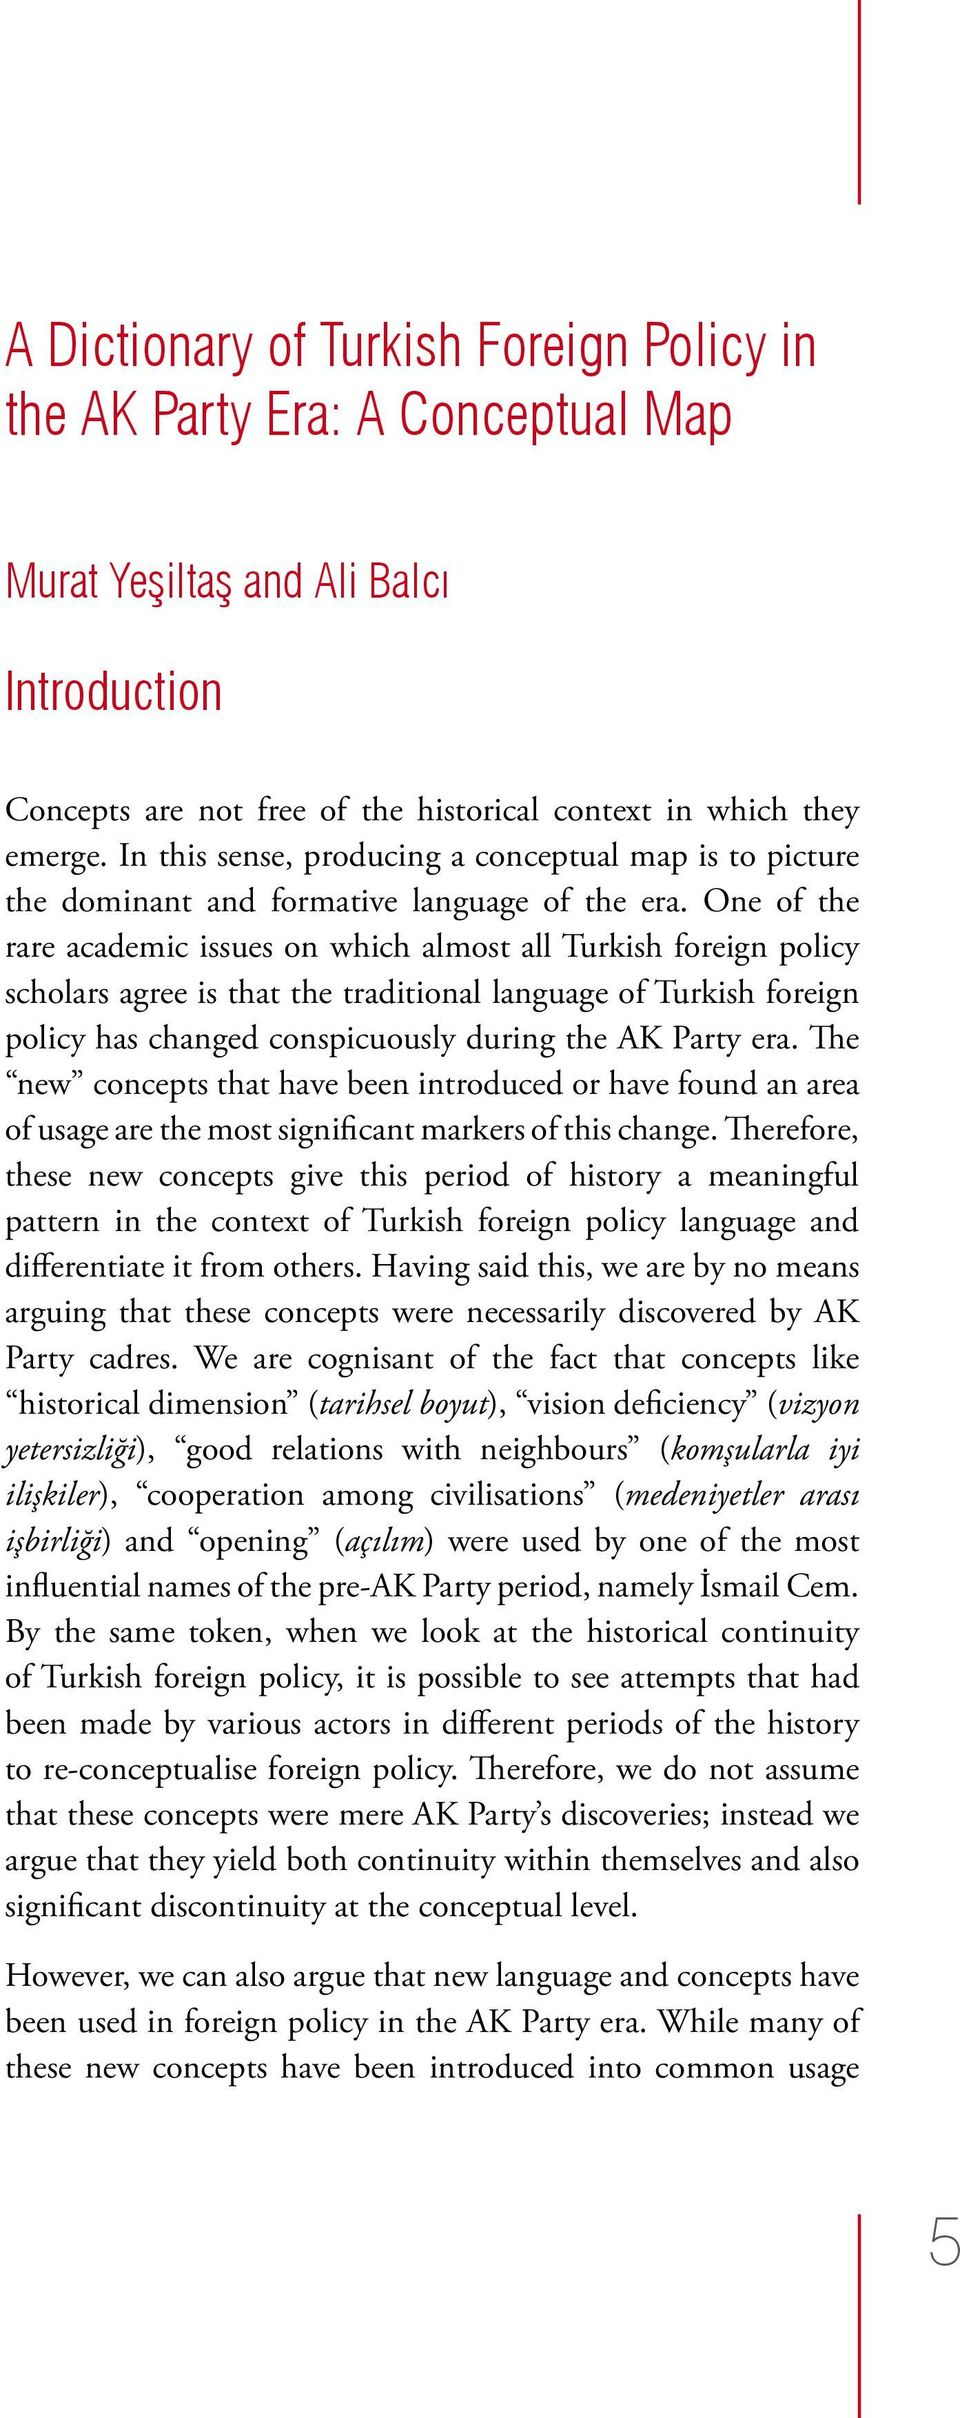 One of the rare academic issues on which almost all Turkish foreign policy scholars agree is that the traditional language of Turkish foreign policy has changed conspicuously during the AK Party era.